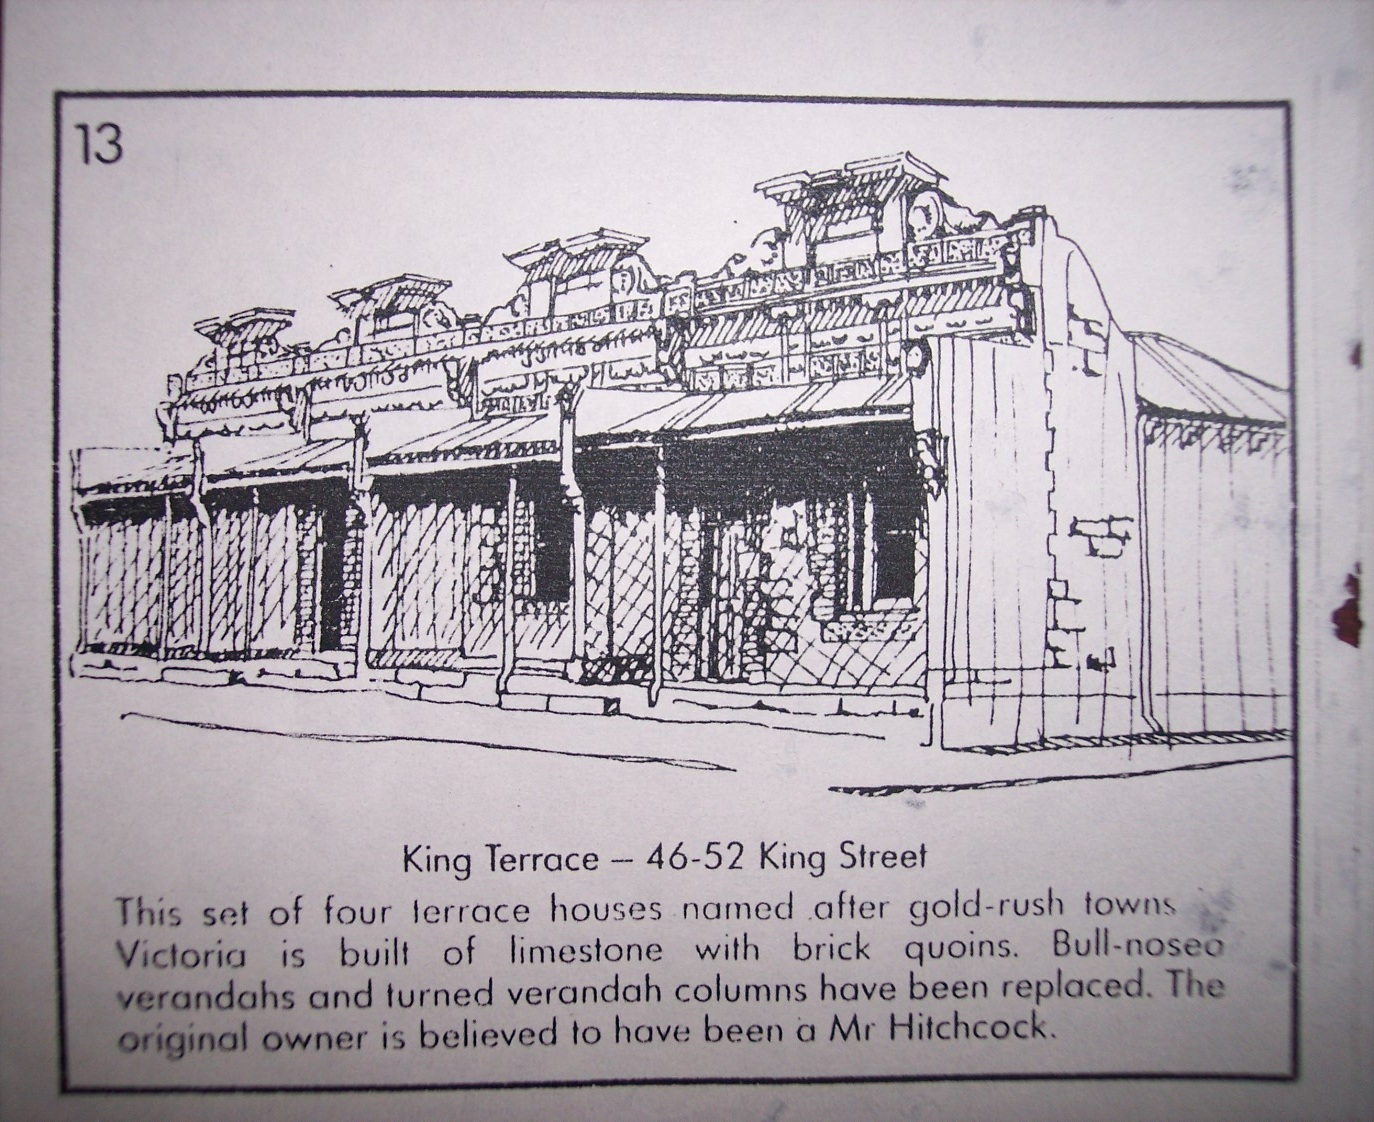 46 - 52 King Street (Early Building Pamphlet